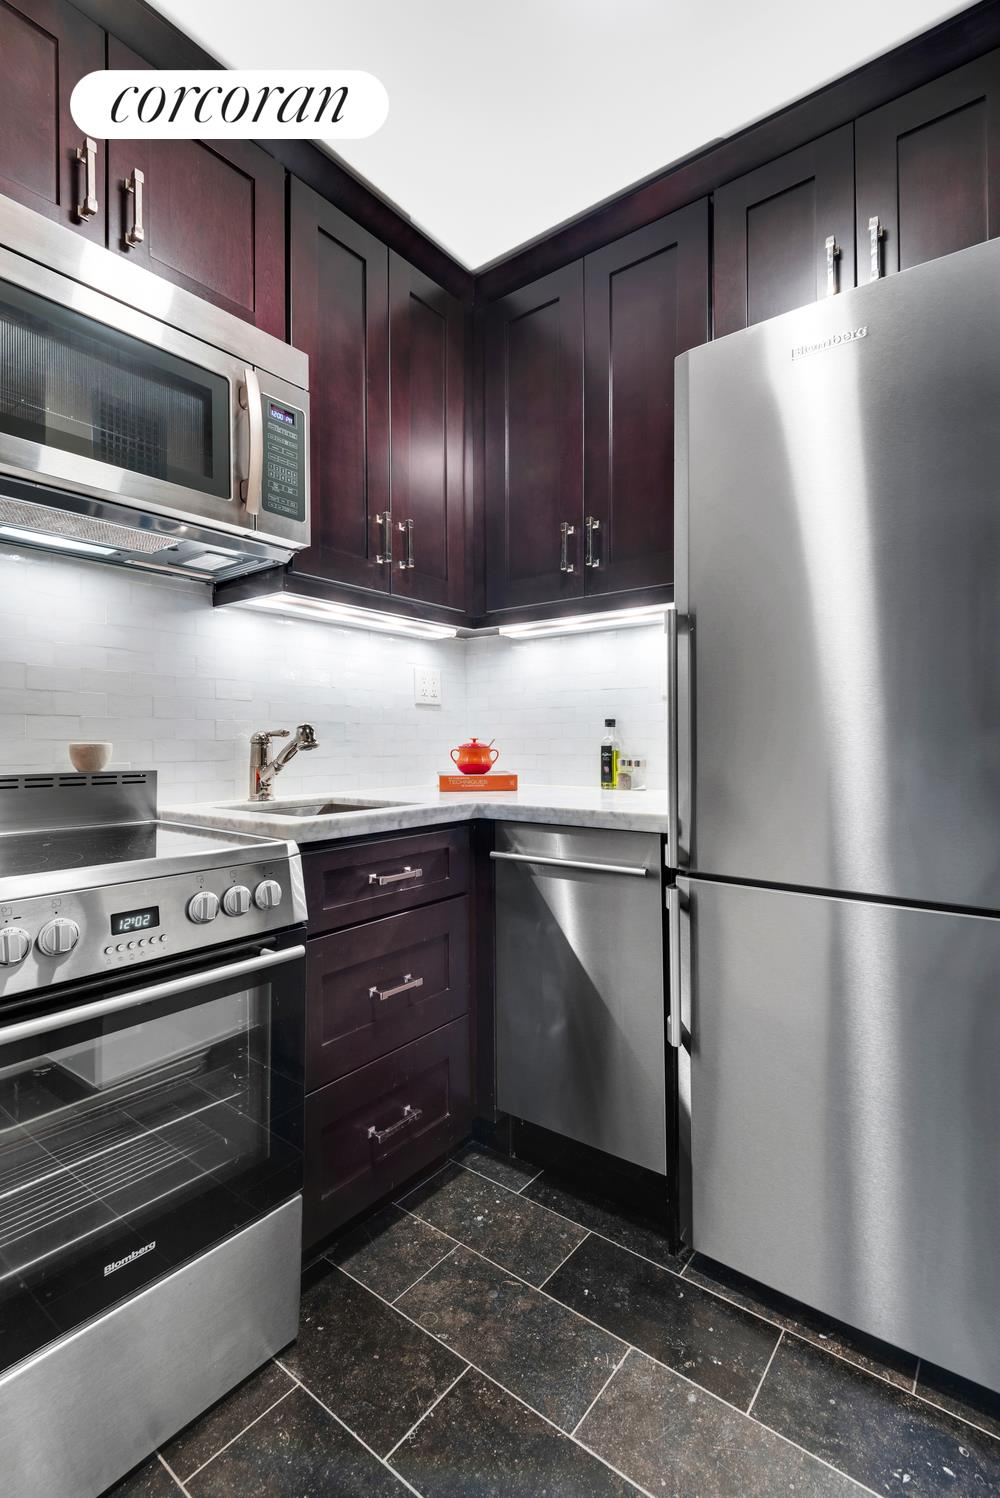 Apartment for sale at 55 East 65th Street, Apt 7B